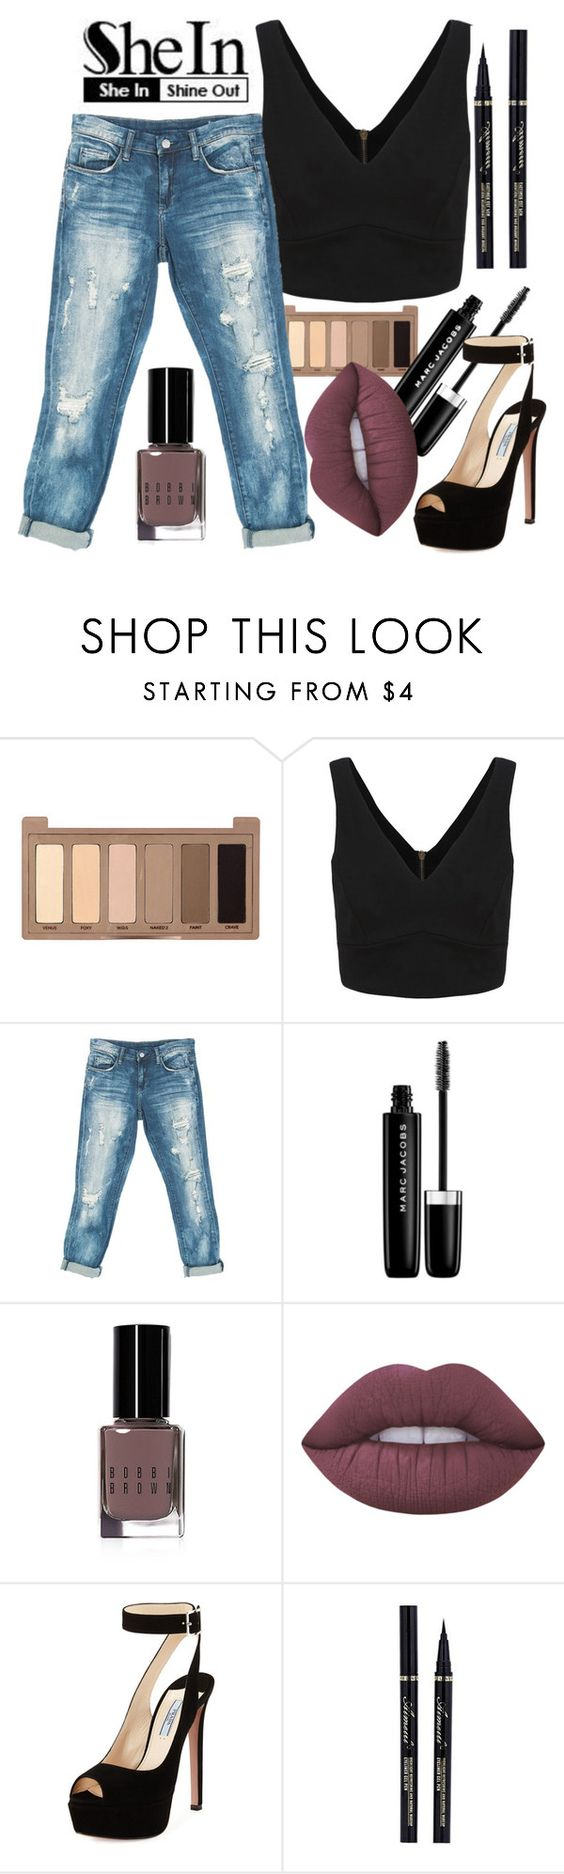 """"" by maiiira-nair ❤ liked on Polyvore featuring Urban Decay, Sans Souci, Marc Jacobs, Bobbi Brown Cosmetics, Lime Crime and Prada"